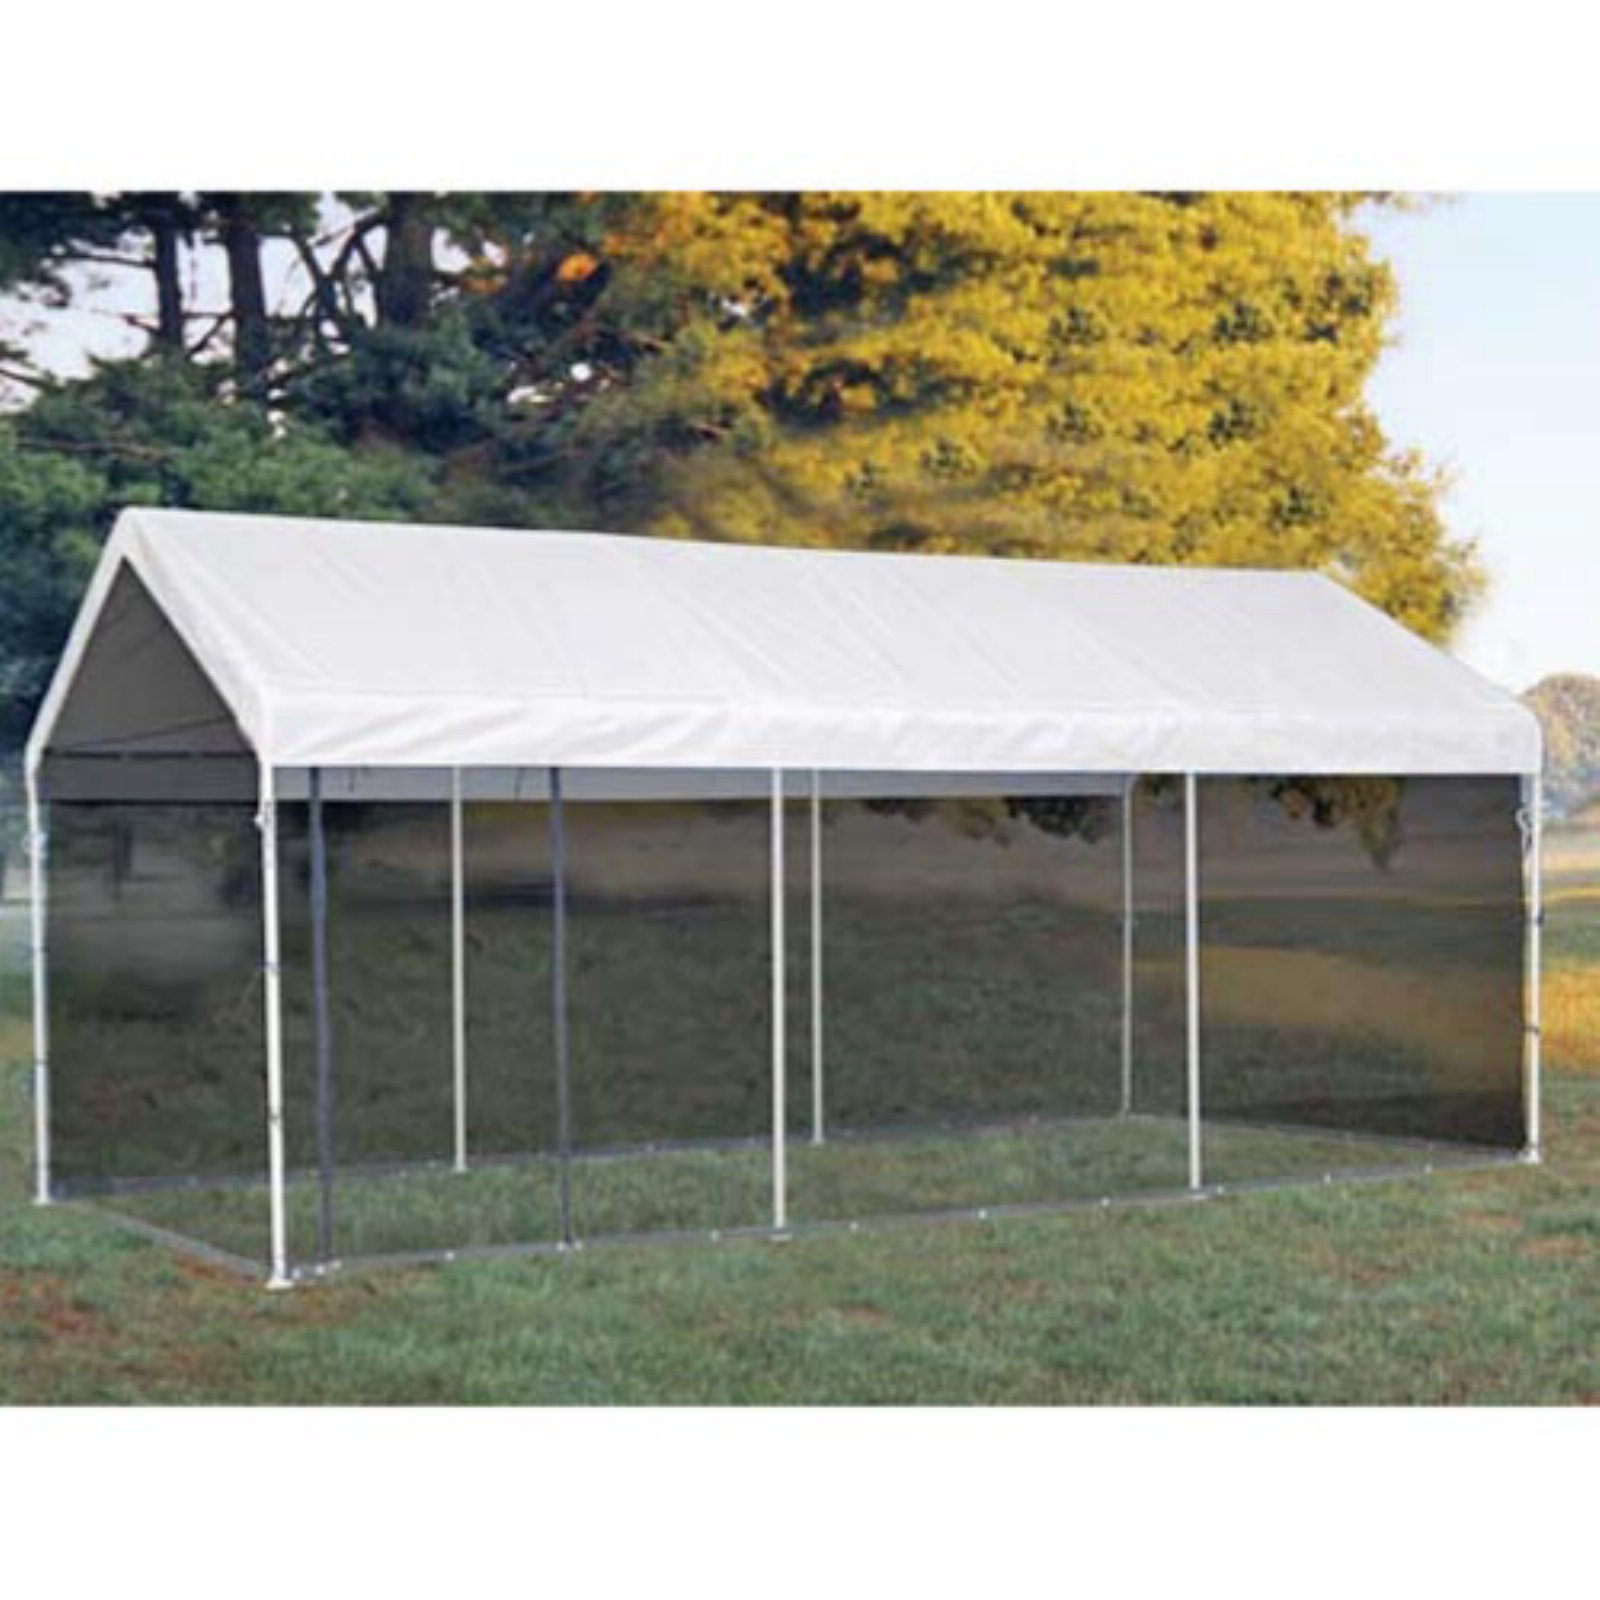 ShelterLogic Max AP 2-in-1 Canopy Pack 10' x 20' with Screen Enclosure Kit